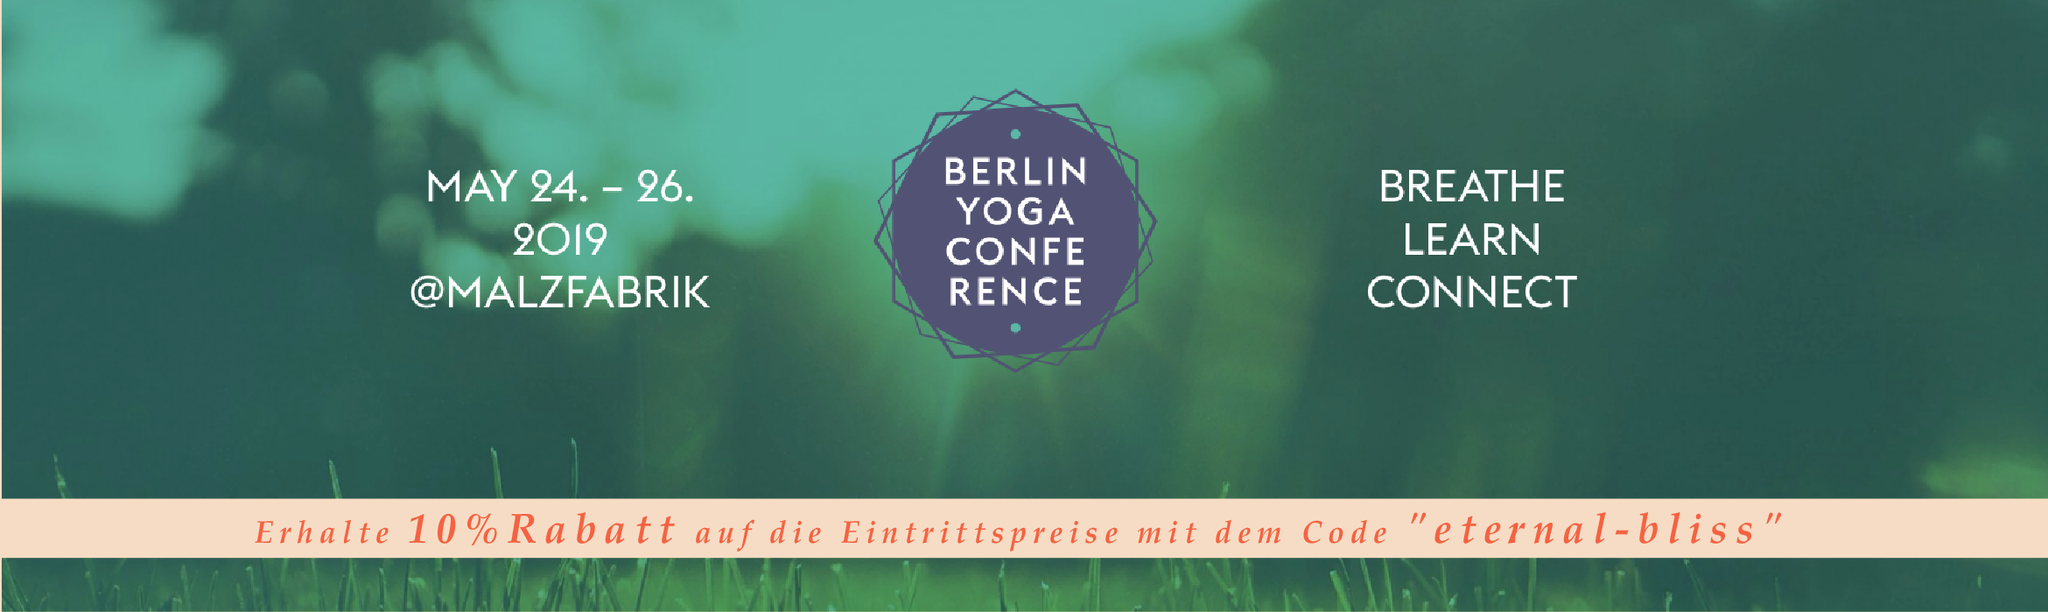 ETERNAL BLISS auf der Berlin Yoga Conference 2019 vom 24. - 26. Mai in der Malzfabrik